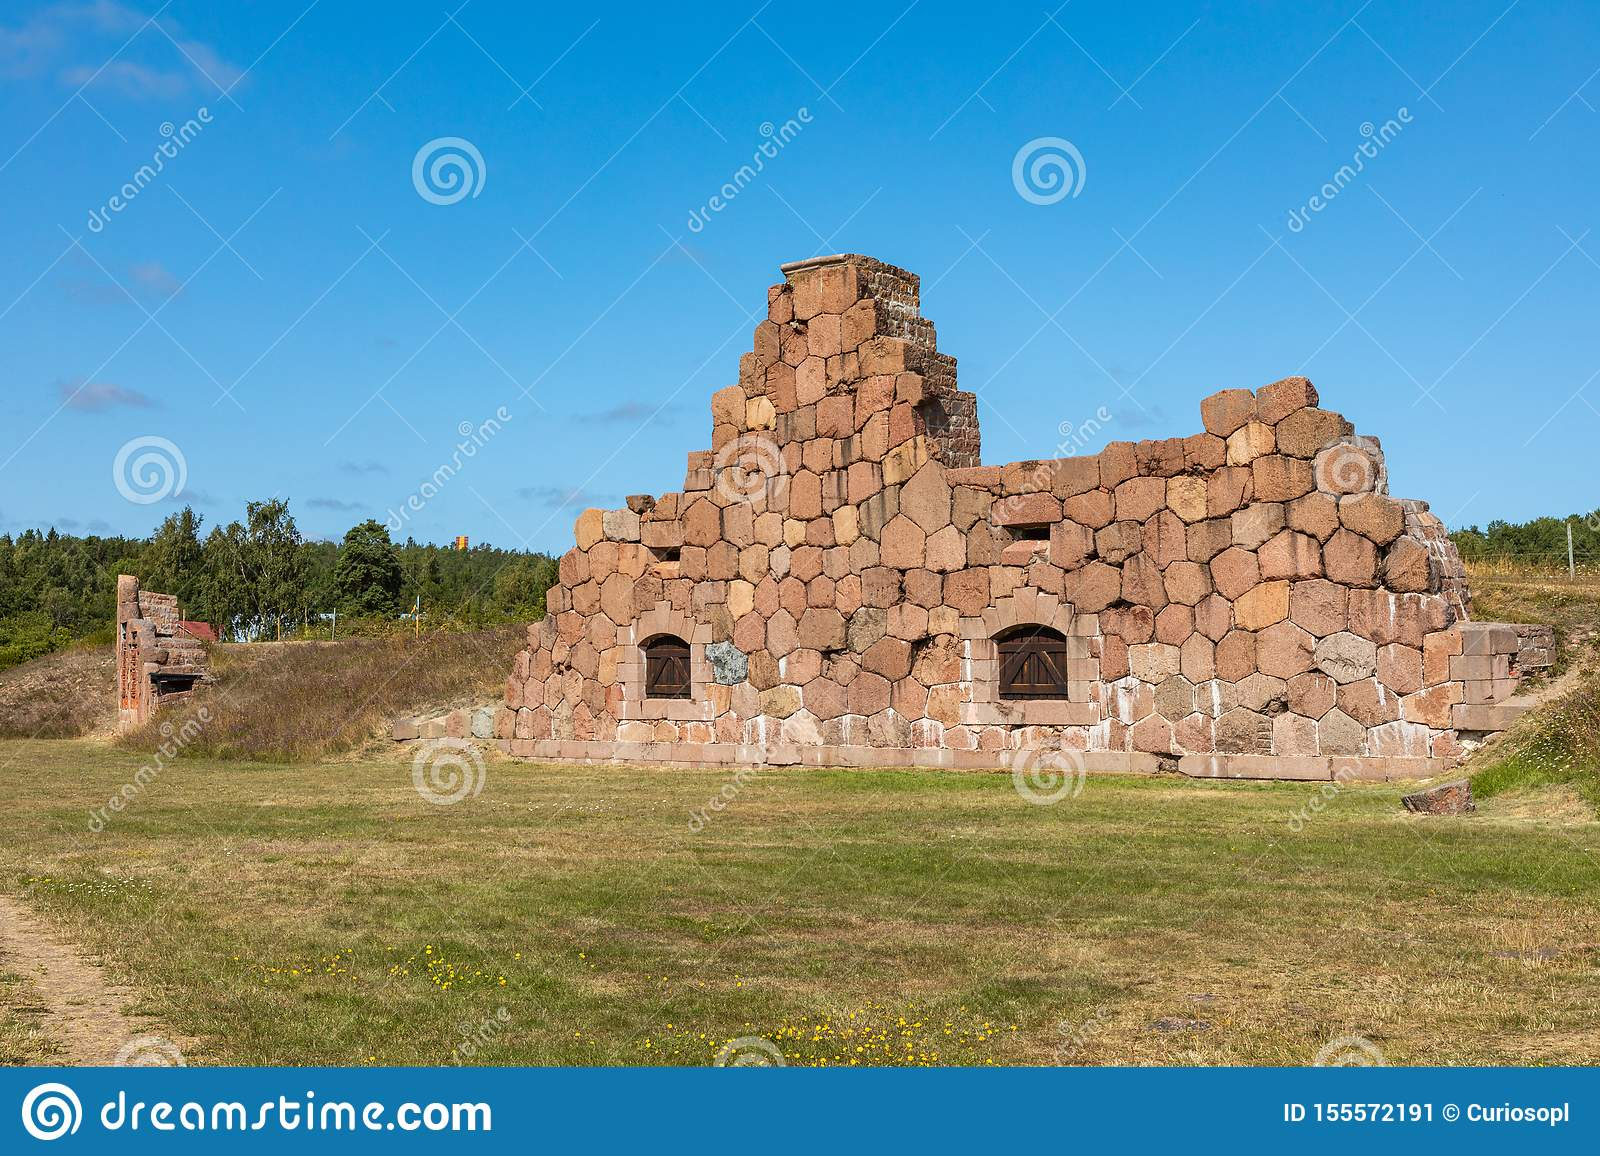 Historical fortified site of Bomarsund. Ruins of fortress. Finland war heritage. Aland islands, Finland. Europe